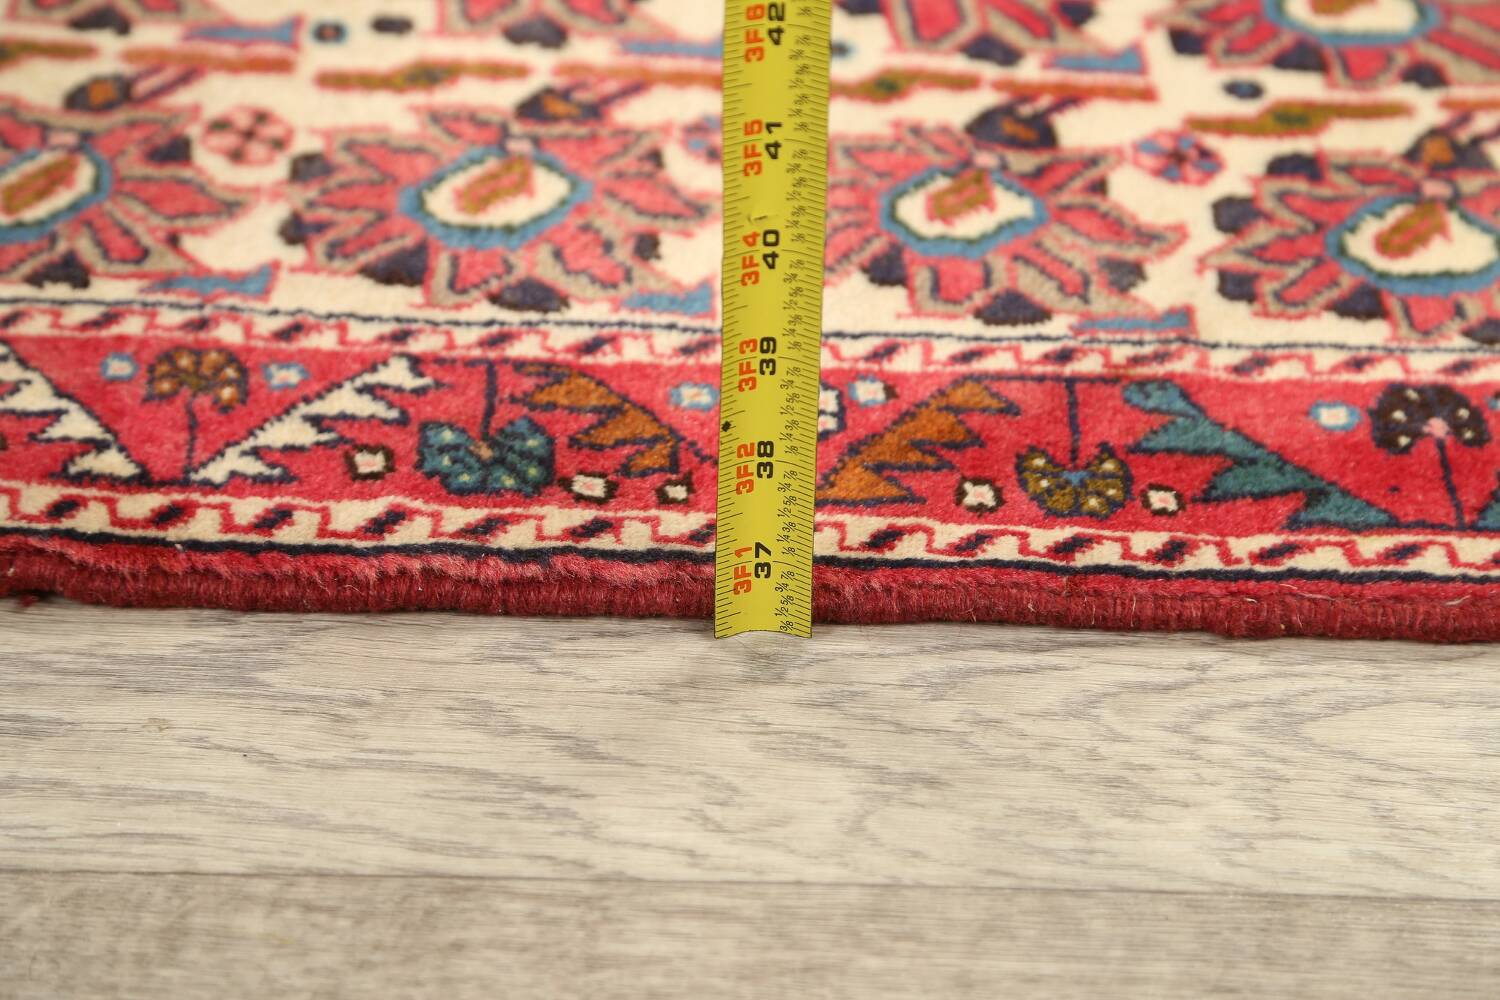 All-Over Geometric Afshar Persian Runner Rug 3x7 image 17